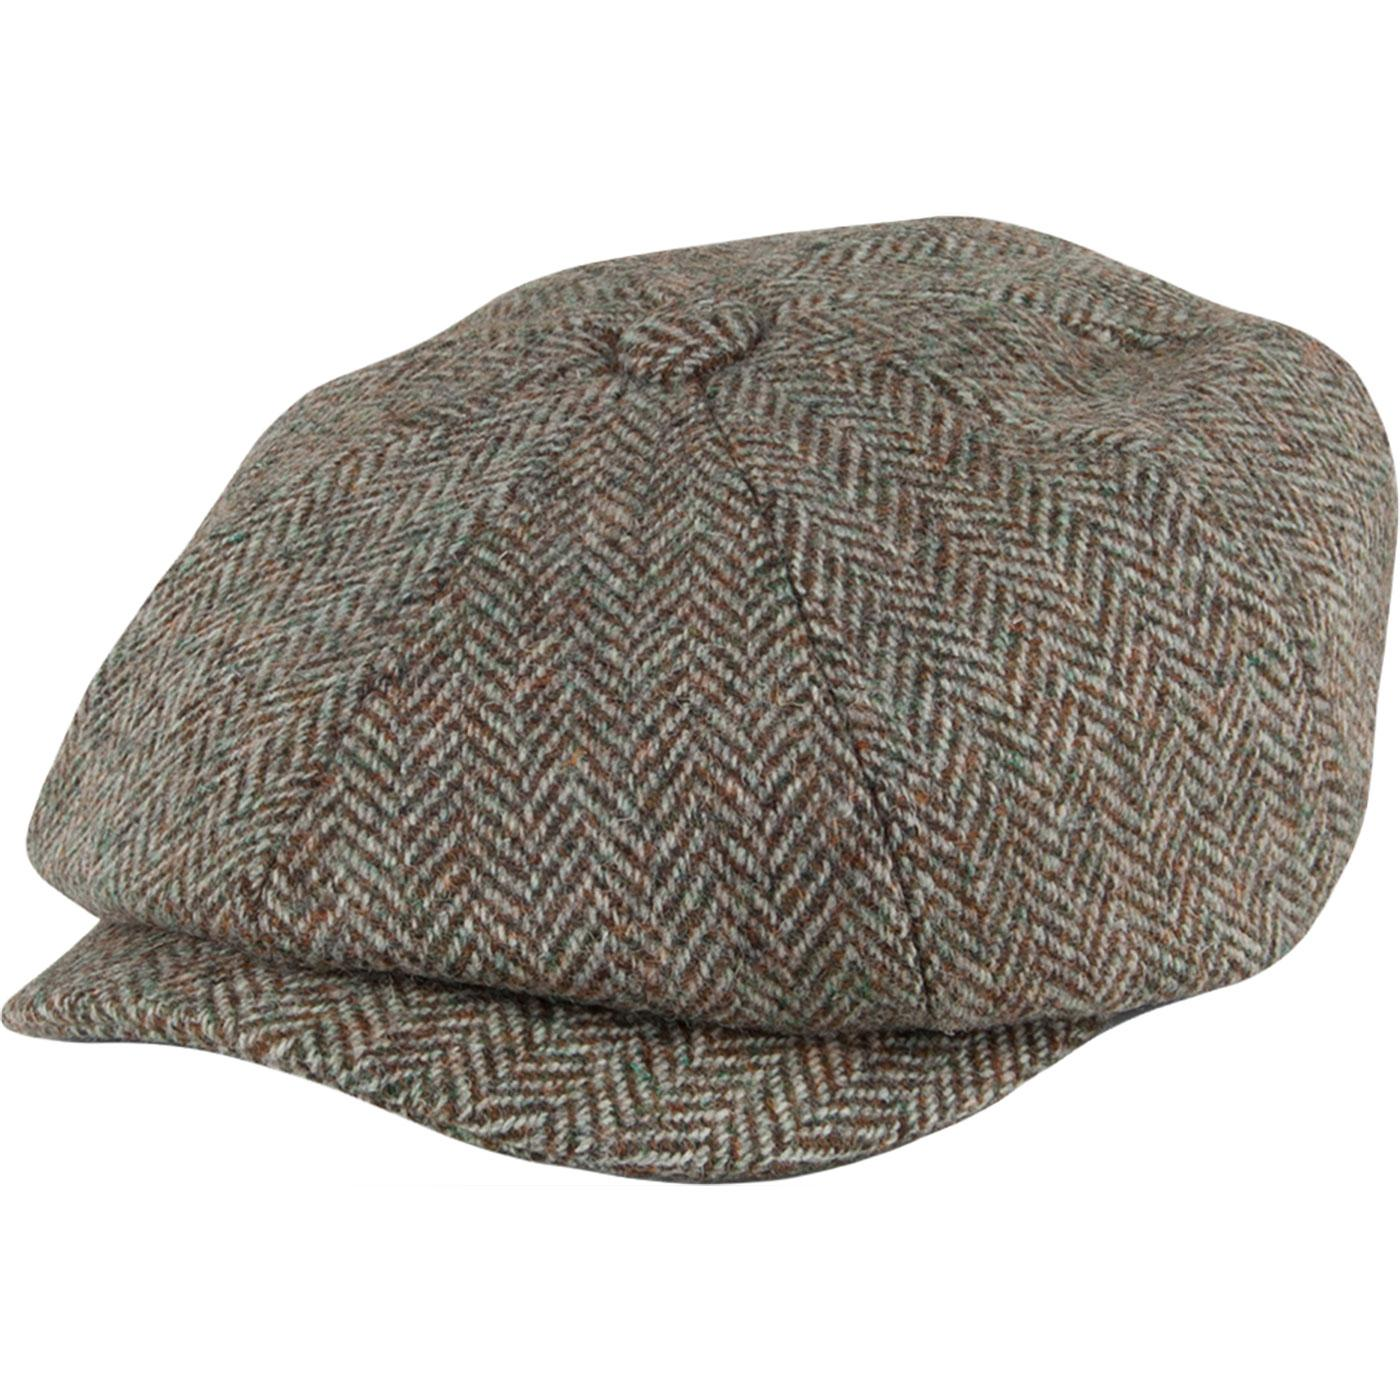 FAILSWORTH Carloway Harris Tweed Gatsby Cap in Grey 34c7cc2da8d